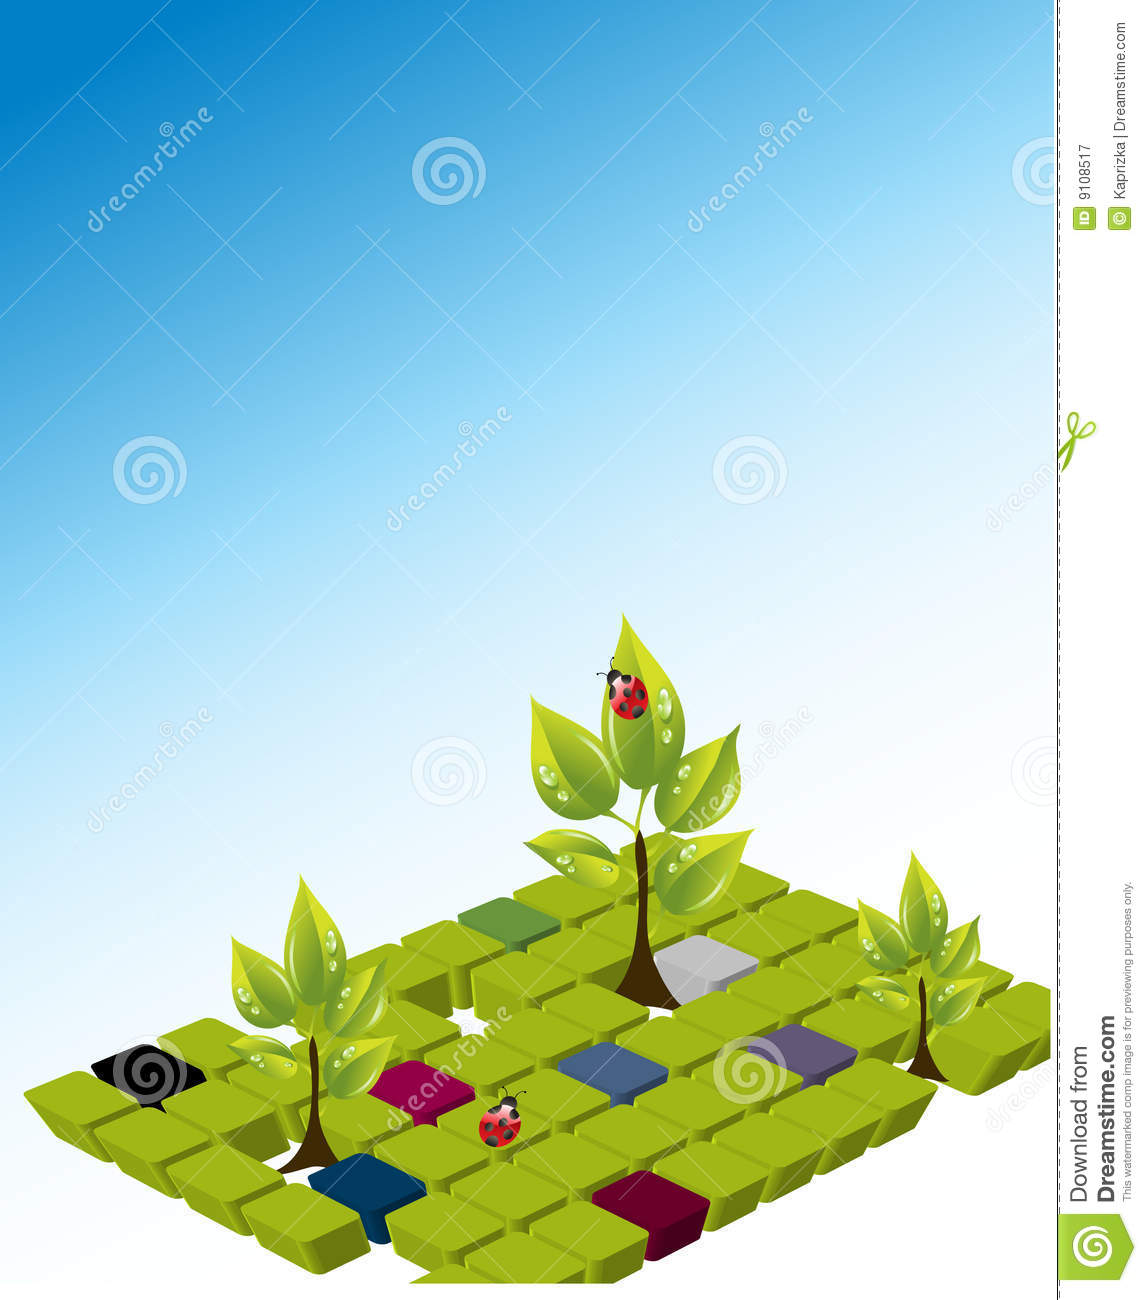 Vector template of a environmental protection royalty free stock photography image 9108517 for Environmental protection plan template